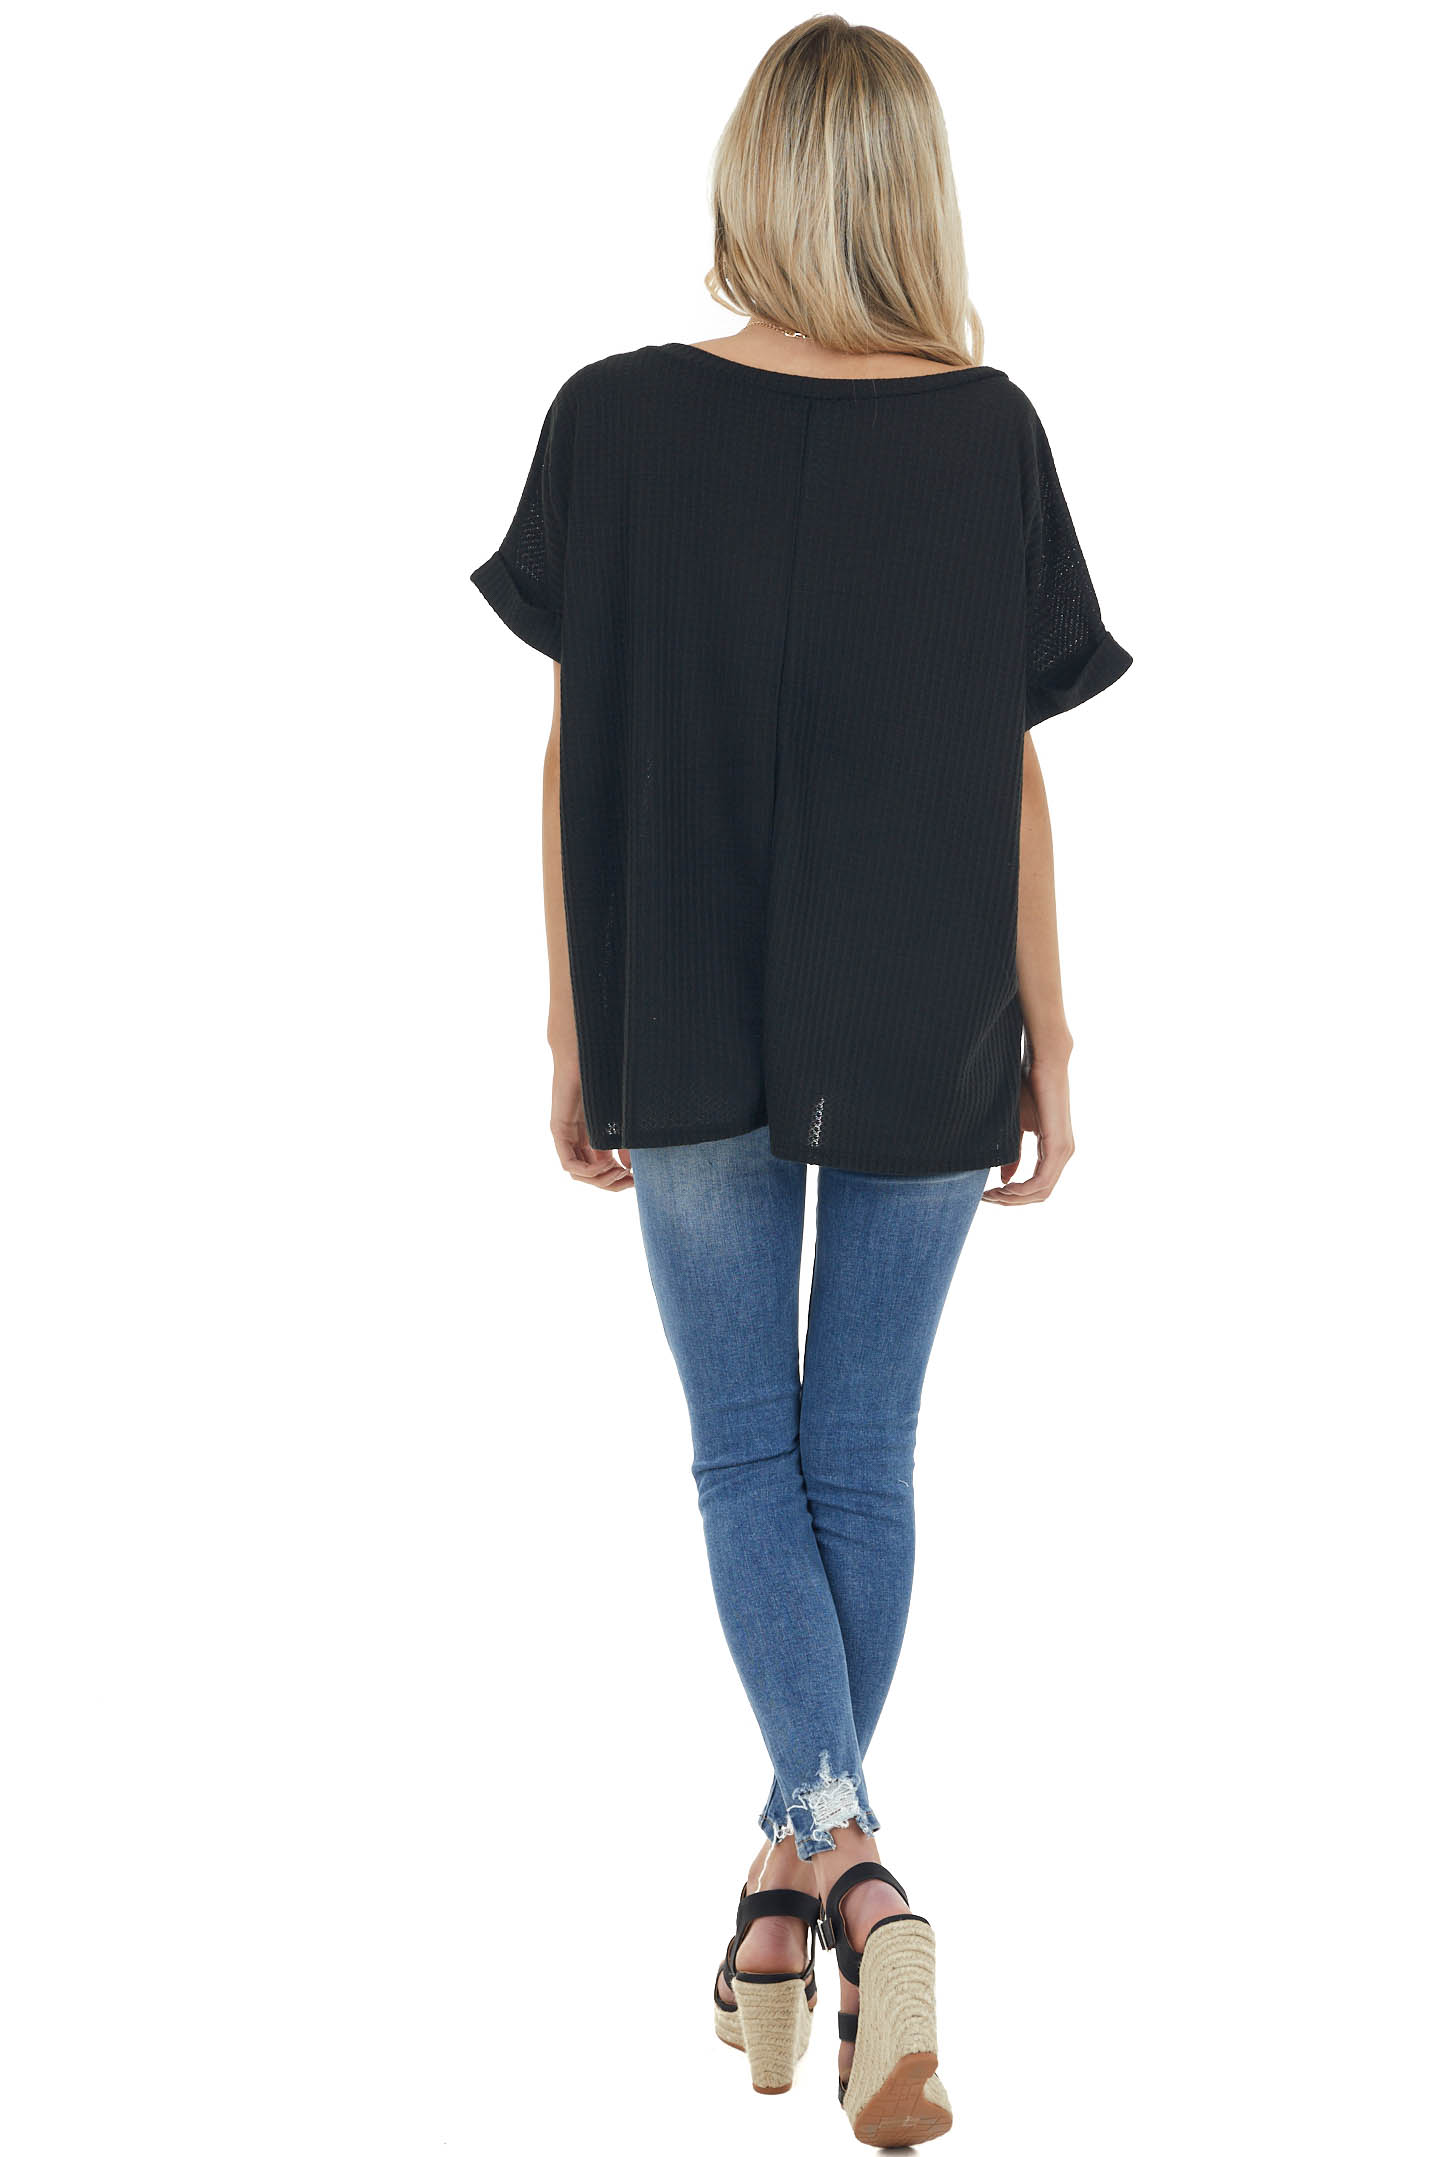 Black Waffle Knit Oversized Top with Short Cuffed Sleeves